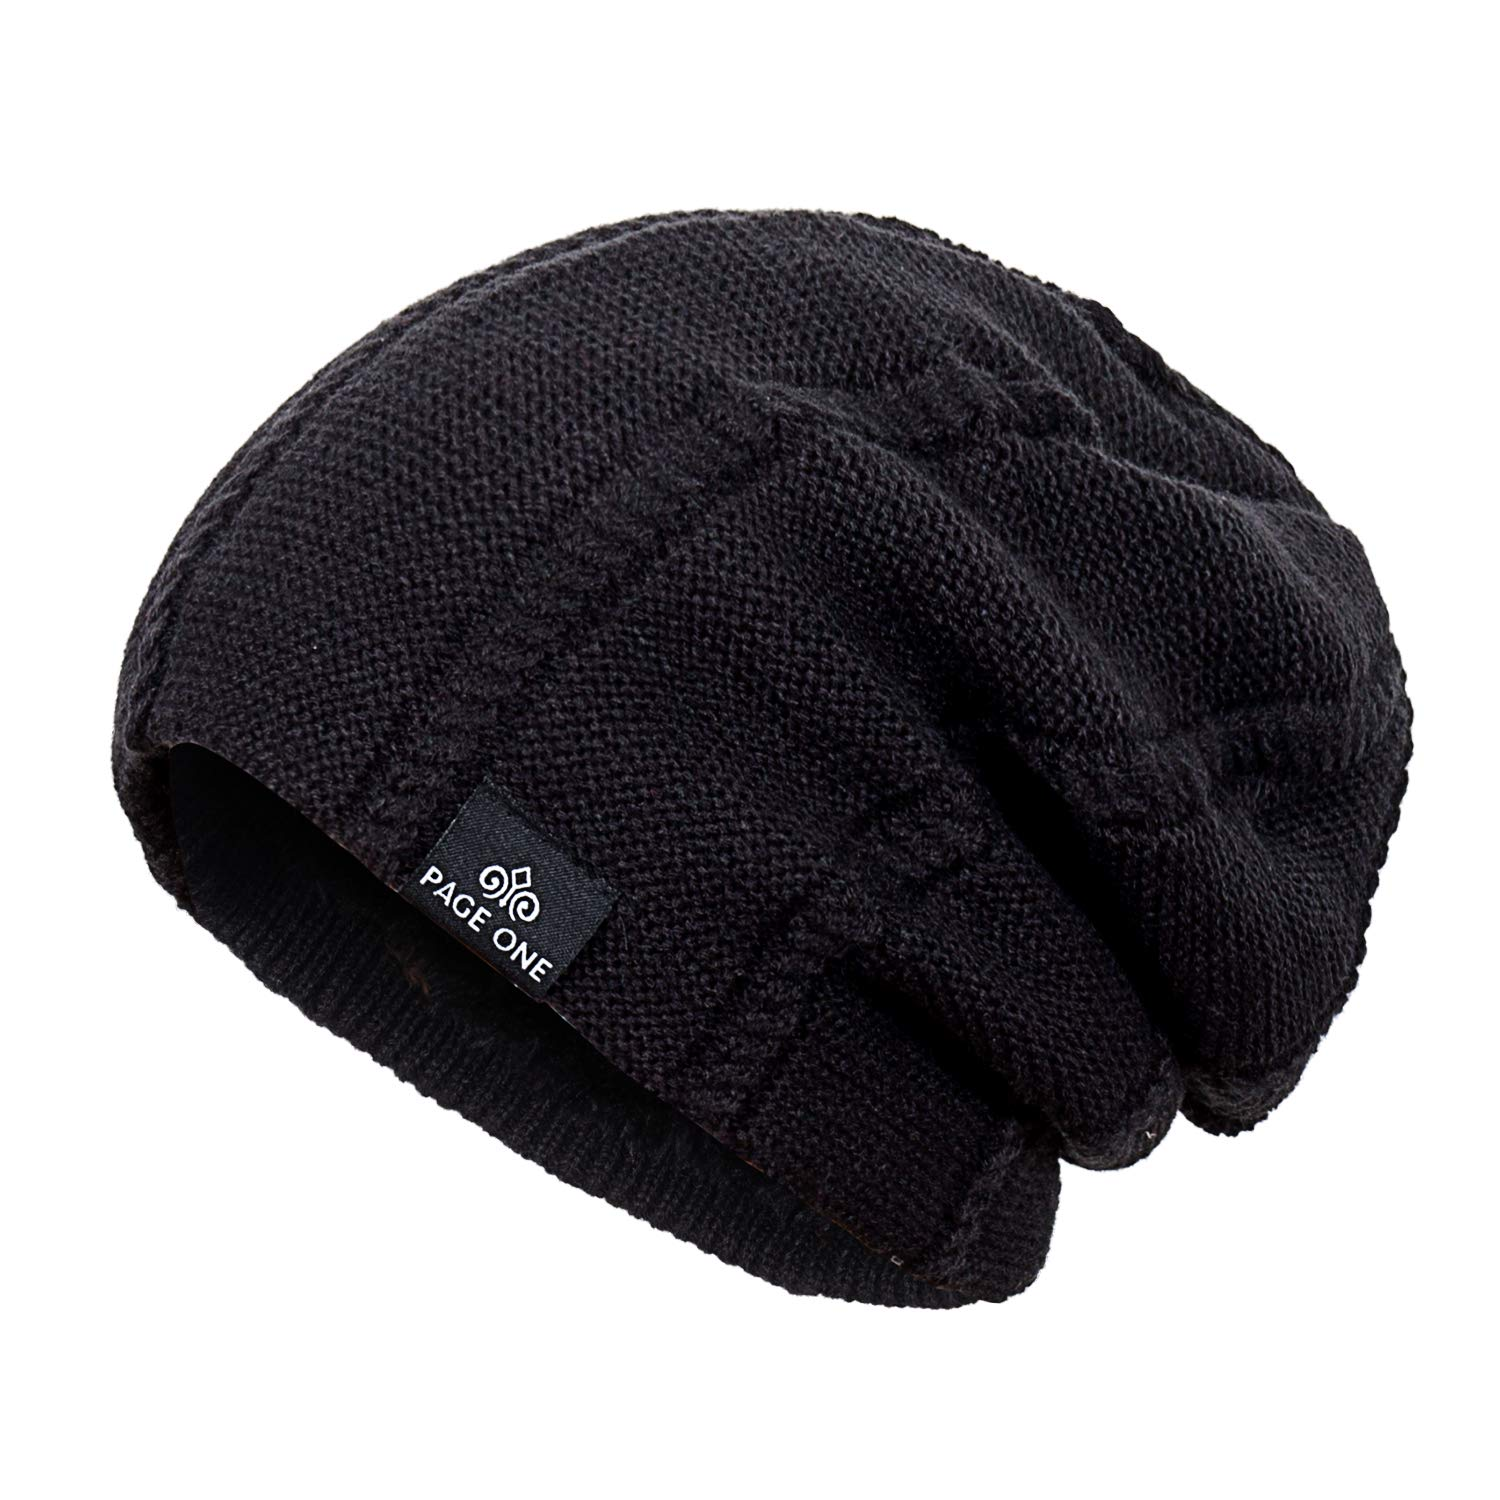 85367c280d9 PAGE ONE Mens Winter Knit Wool Hat Solid Soft Stretchy Slouchy Beanie Men  Women(Black) at Amazon Men s Clothing store